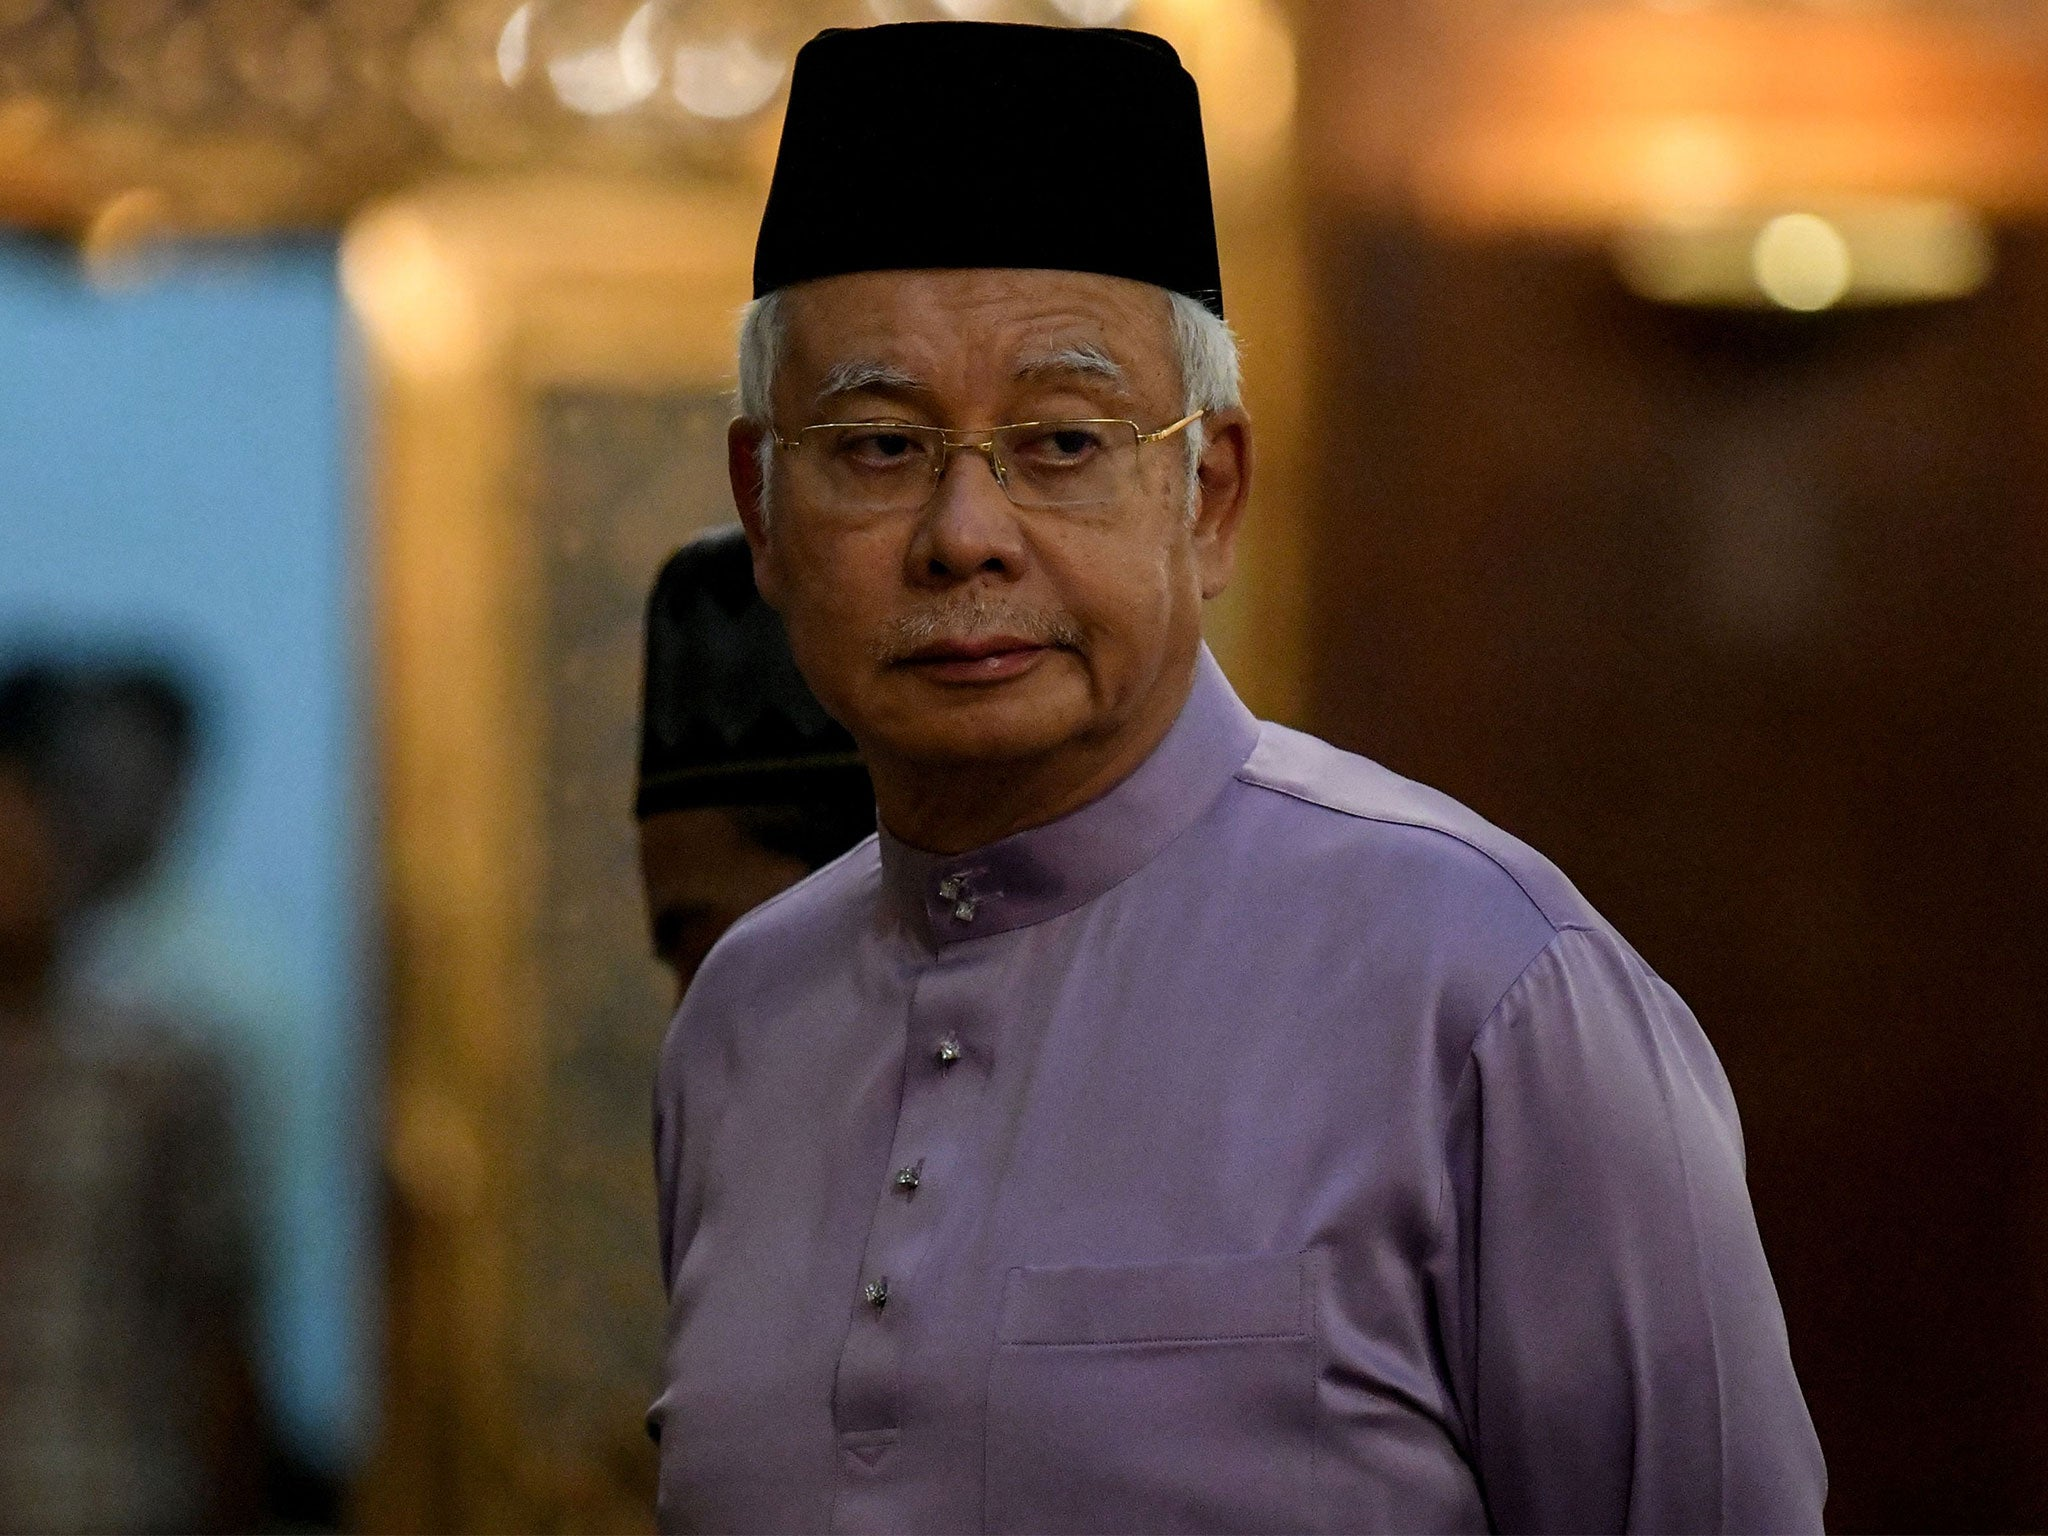 Former Malaysian PM angry as anti-corruption police raid his home and seize luxury items